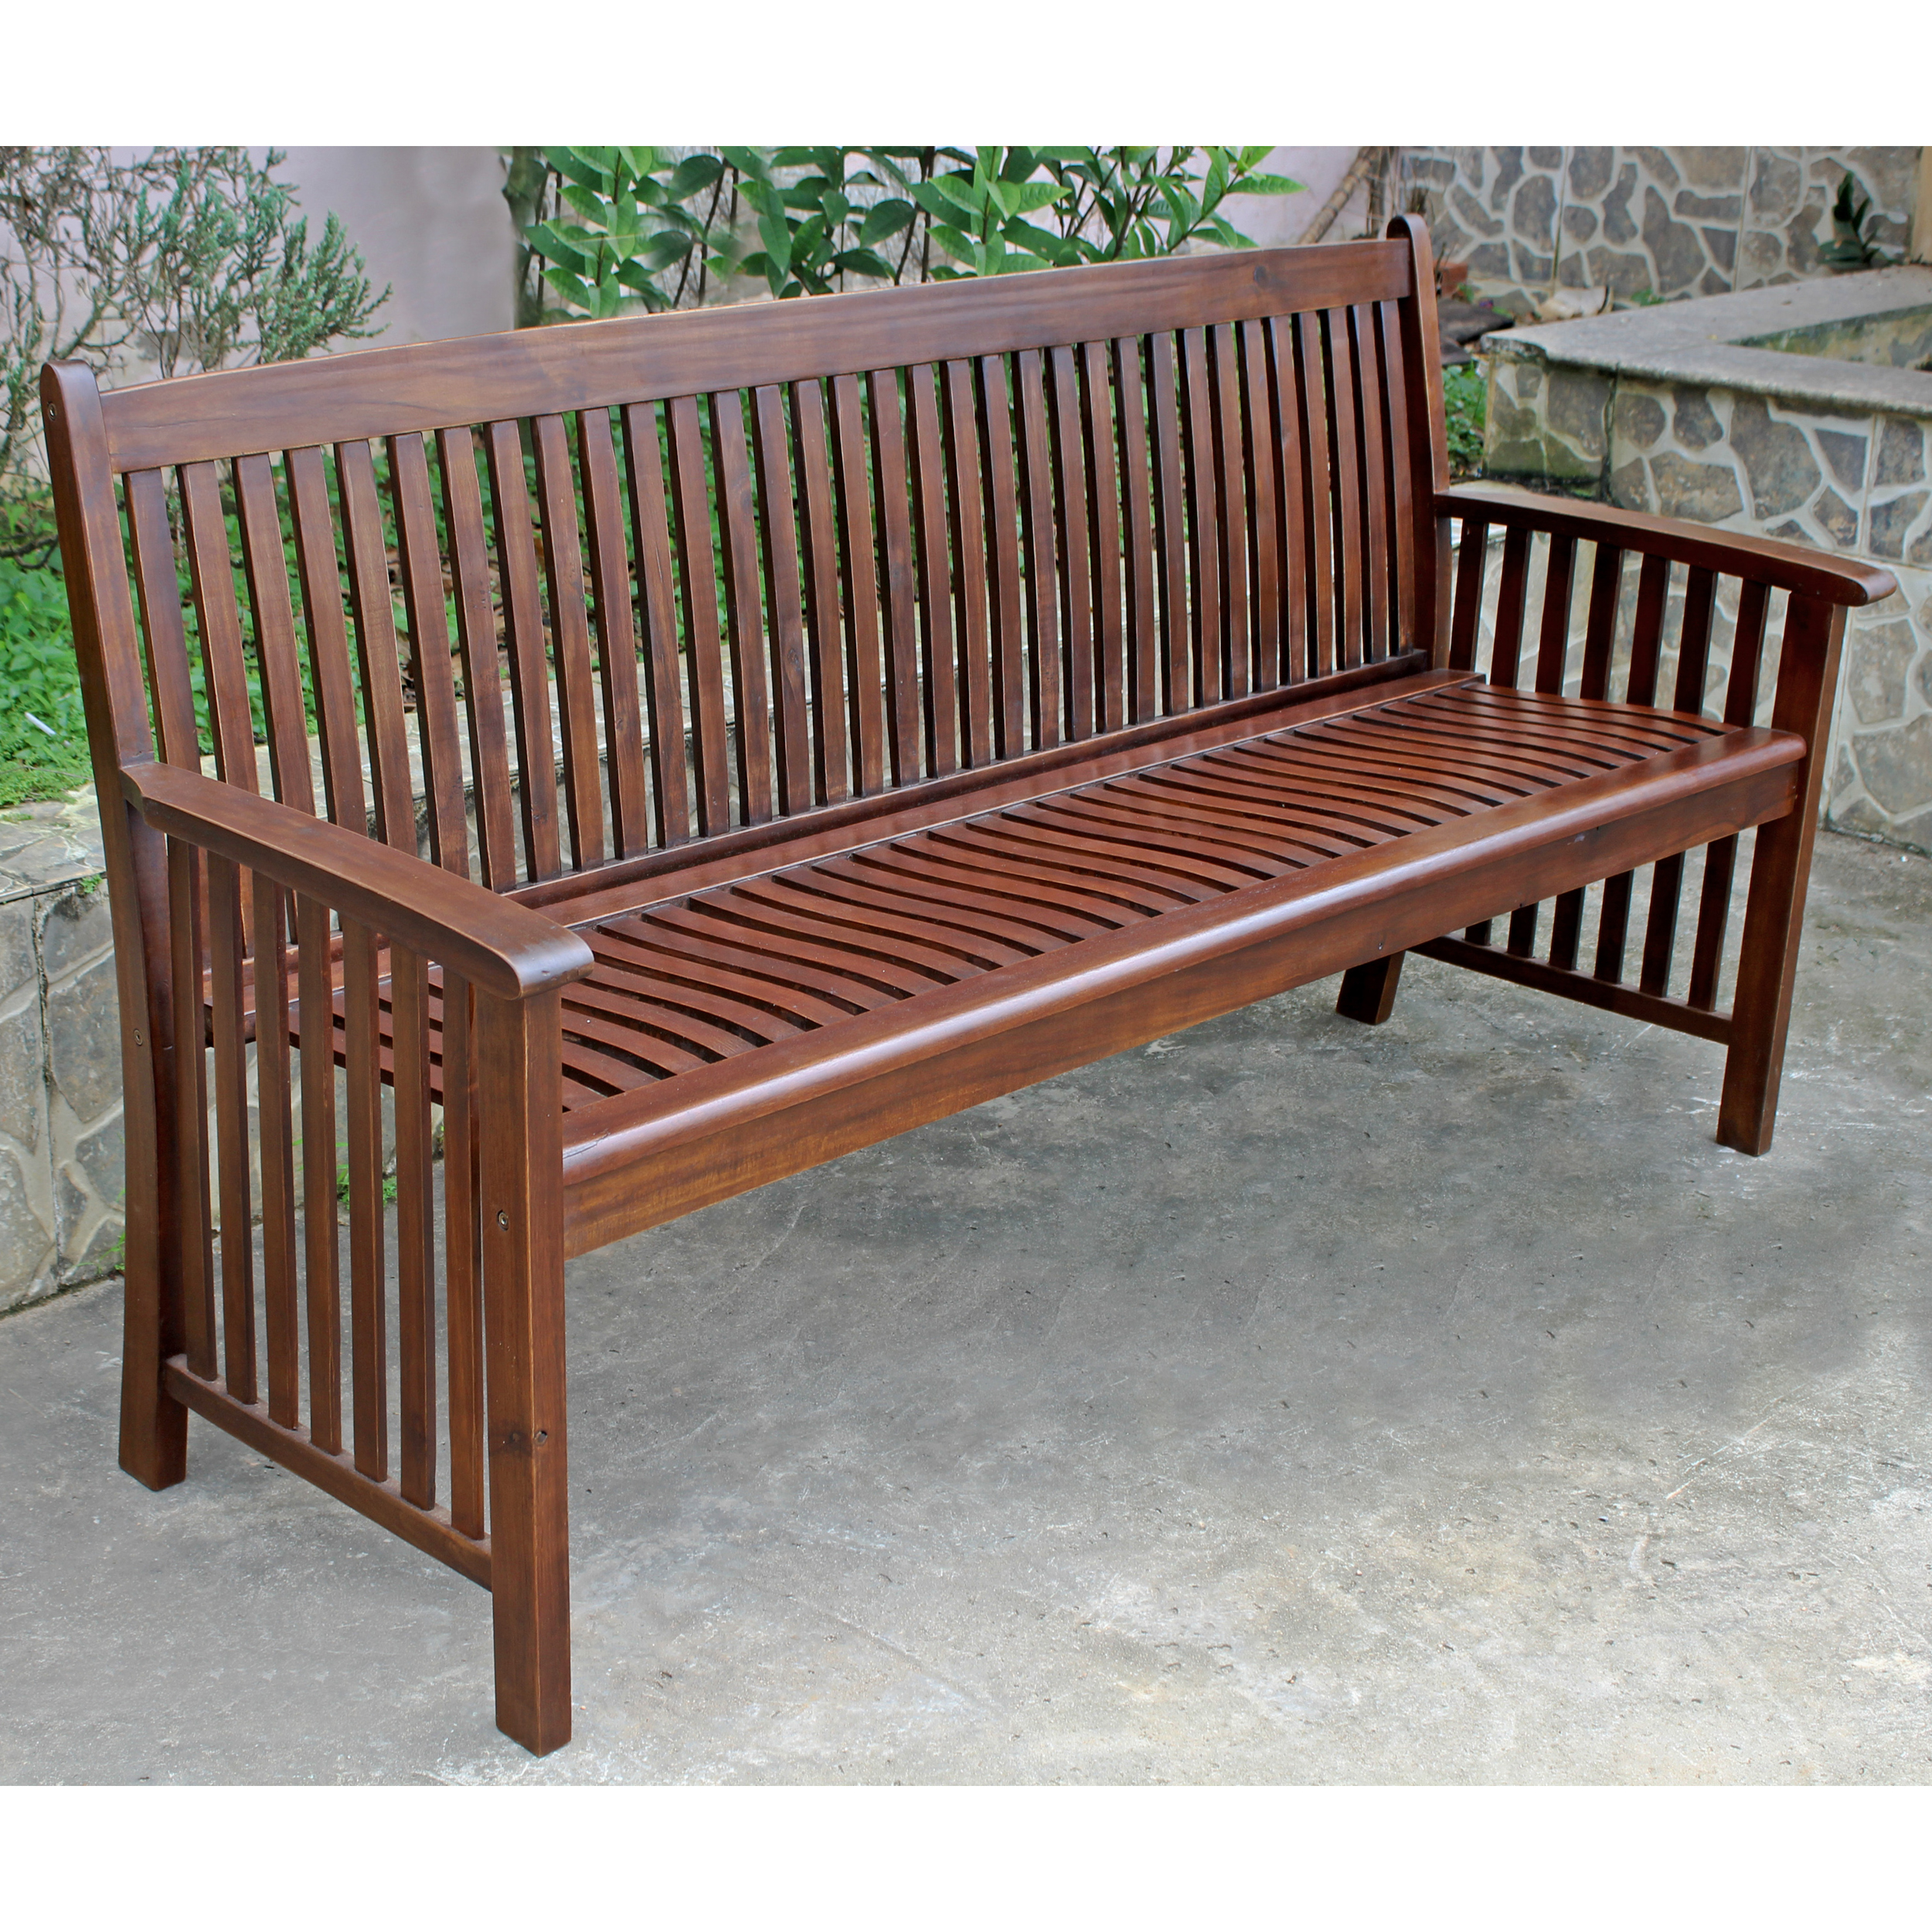 Highland Acacia Denver 3-seater Park Bench